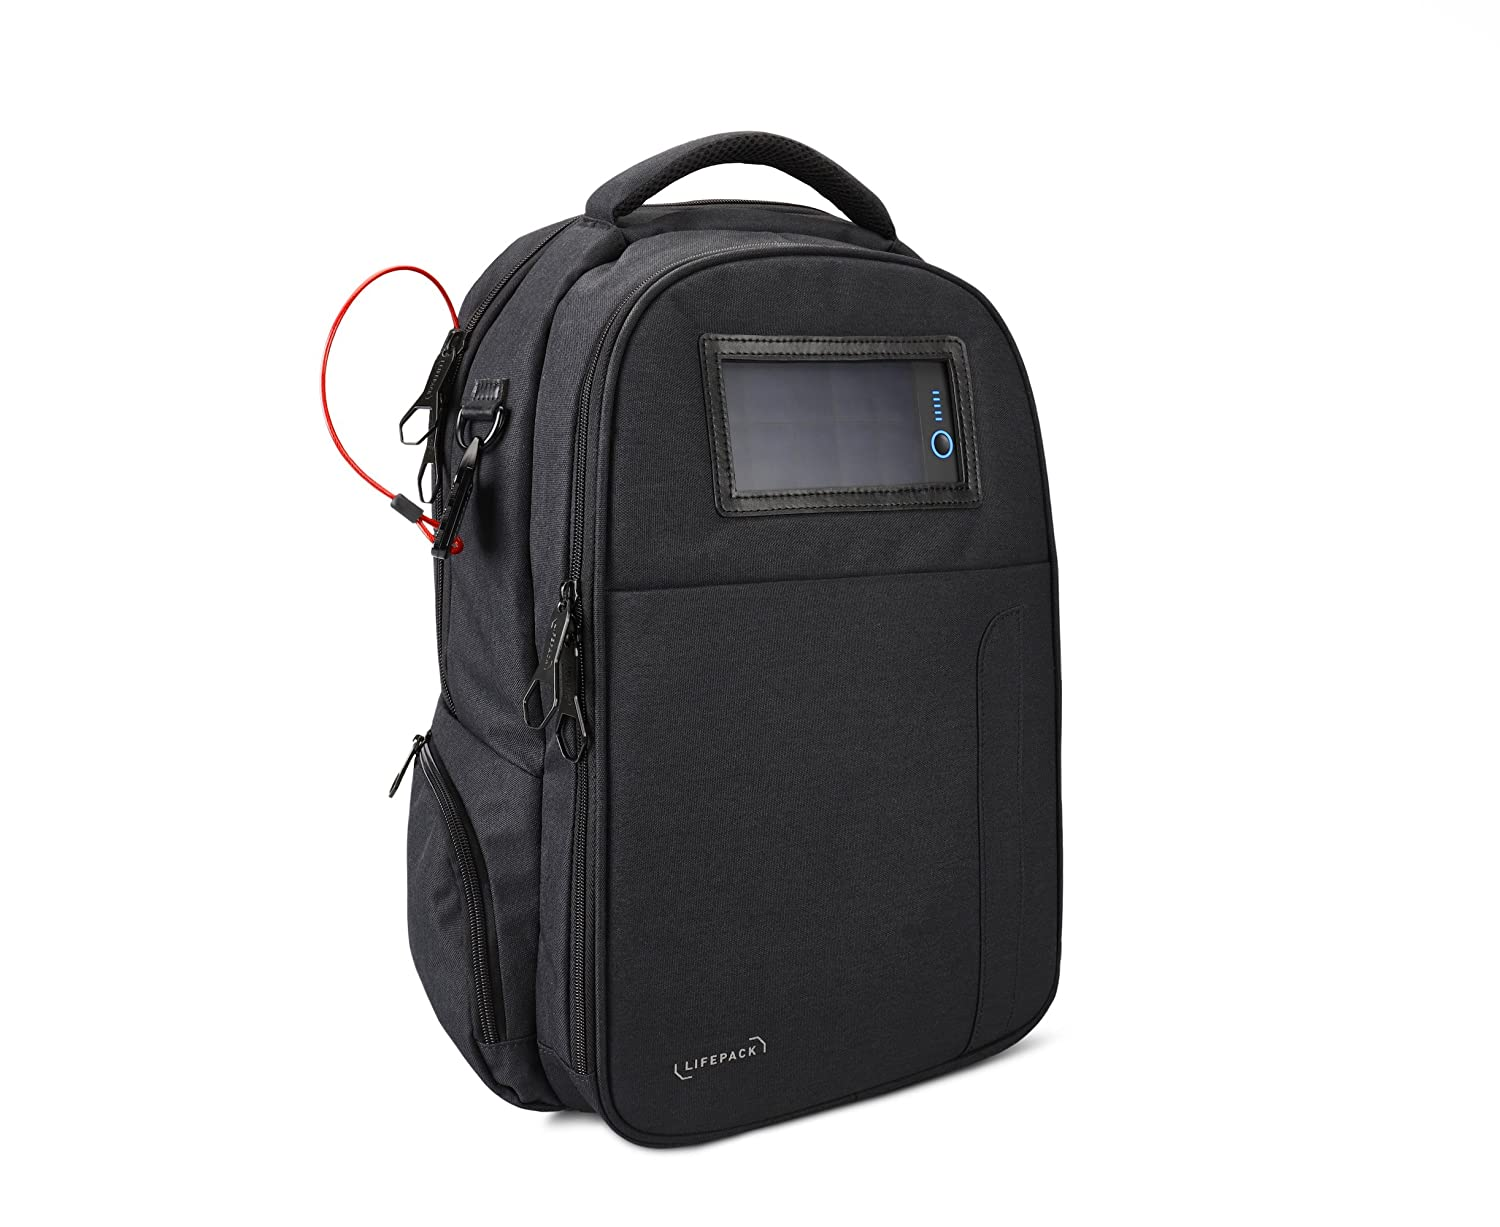 74567abde4 Amazon.com  Lifepack Solar Powered and Anti-Theft Backpack with laptop  storage  Computers   Accessories